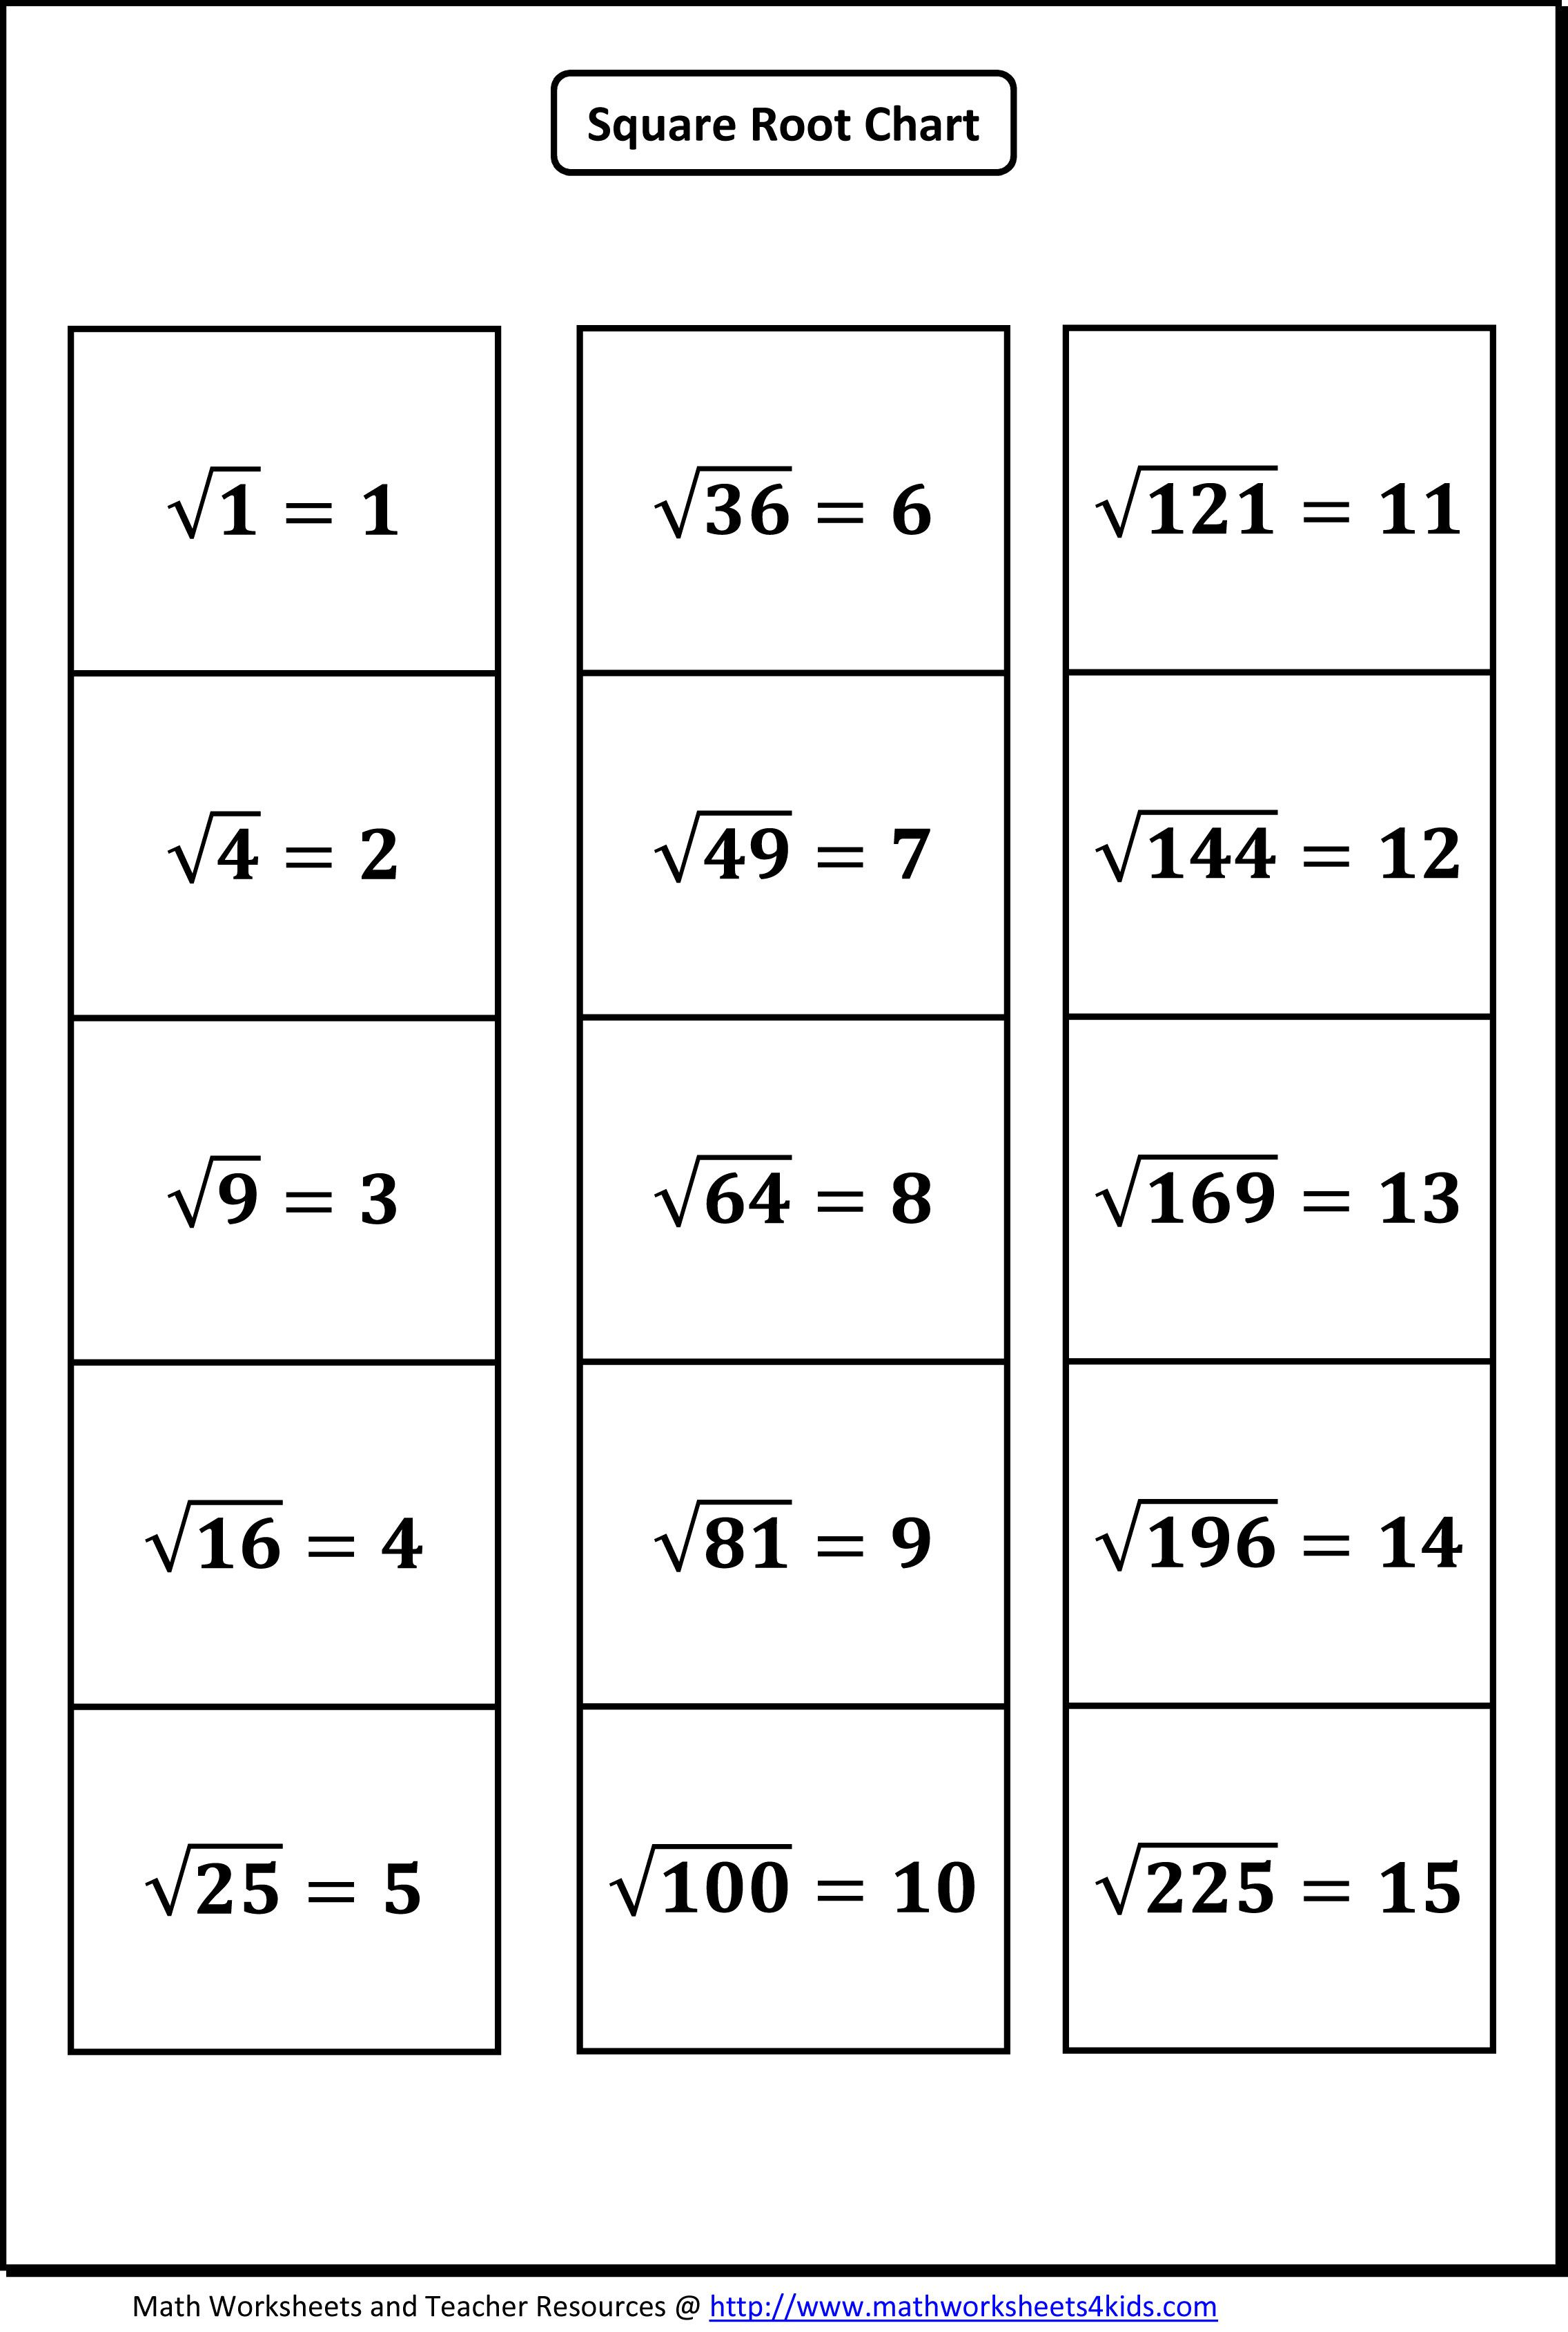 Square root worksheets Find the square root of whole numbers – Adding Square Roots Worksheet